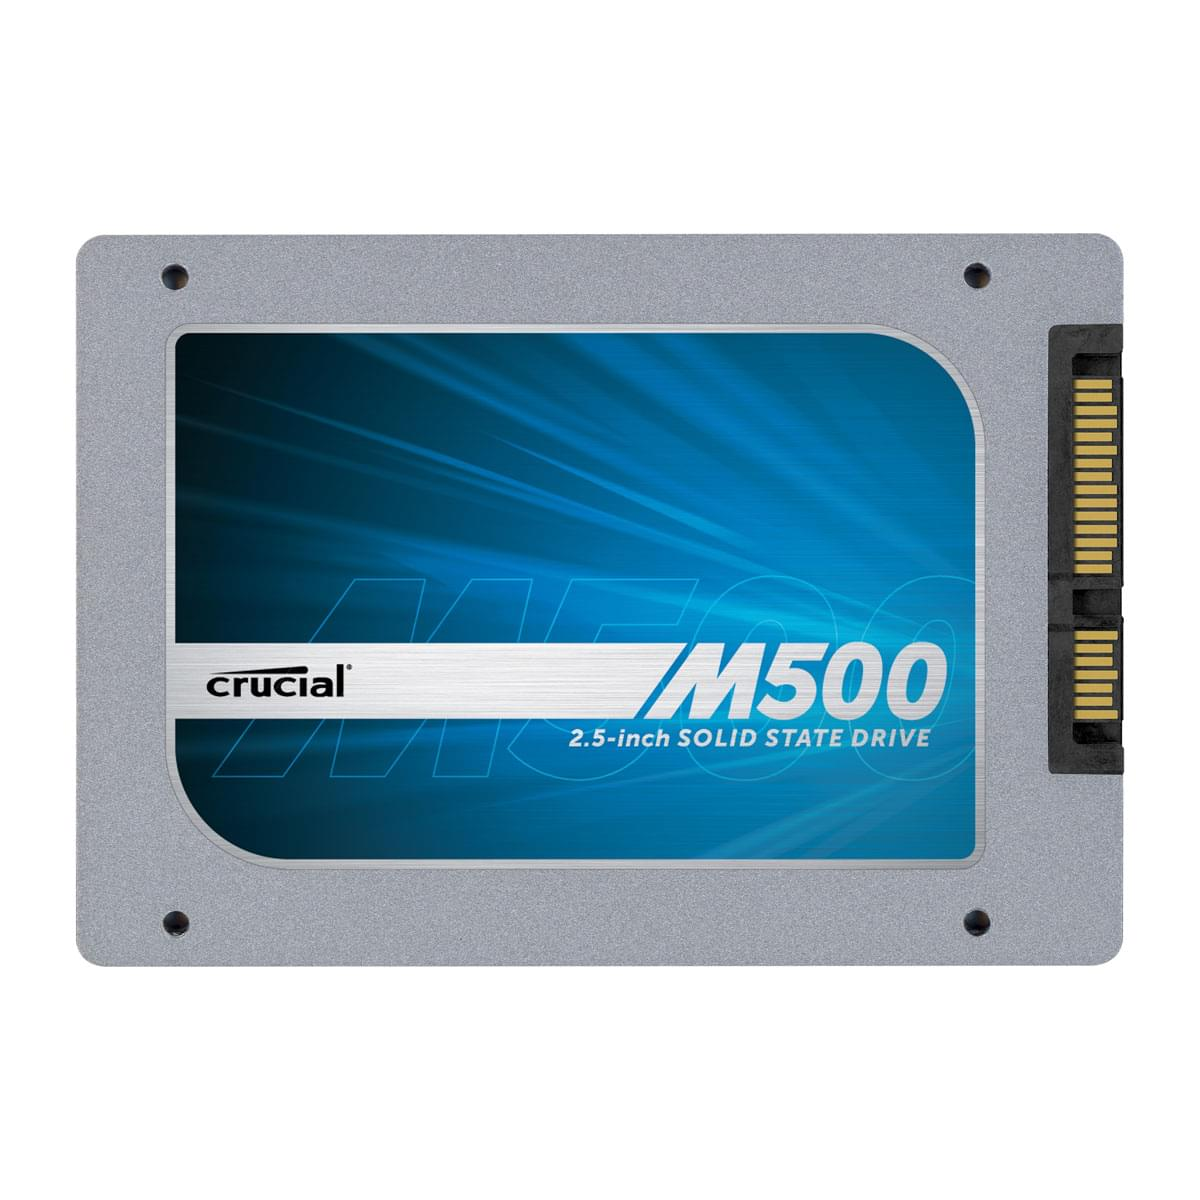 Crucial 960Go SSD M500 CT960M500SSD1 SATA 6 960Go-1To - Disque SSD - 0